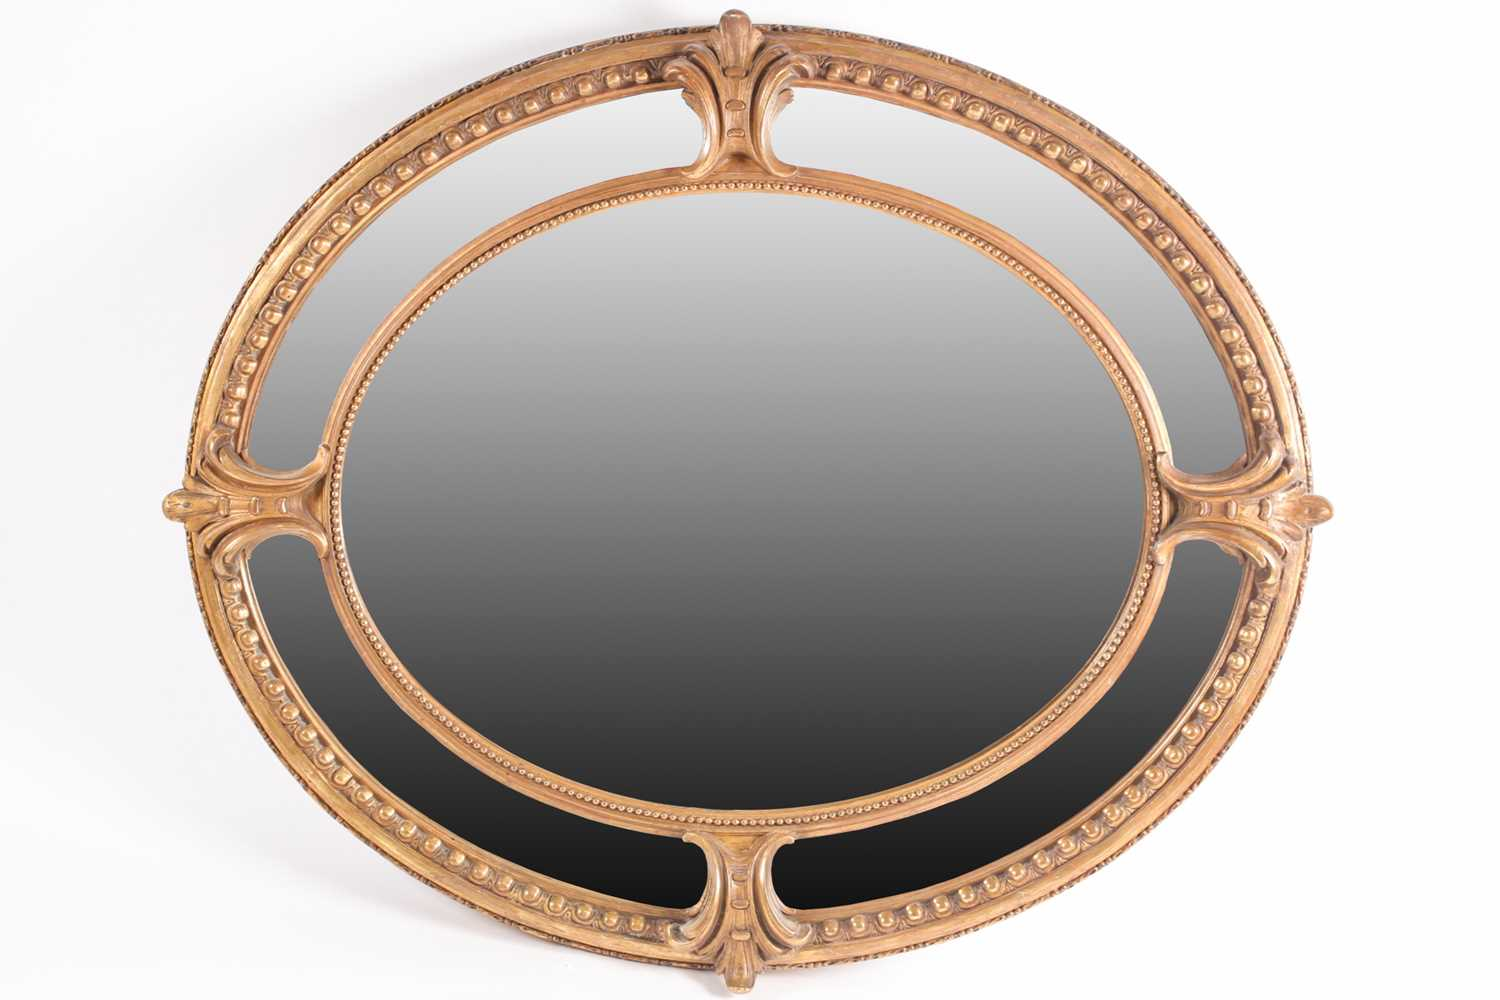 A Victorian carved wood and gilt gesso oval wall mirror with cartouch decoration and an outer border